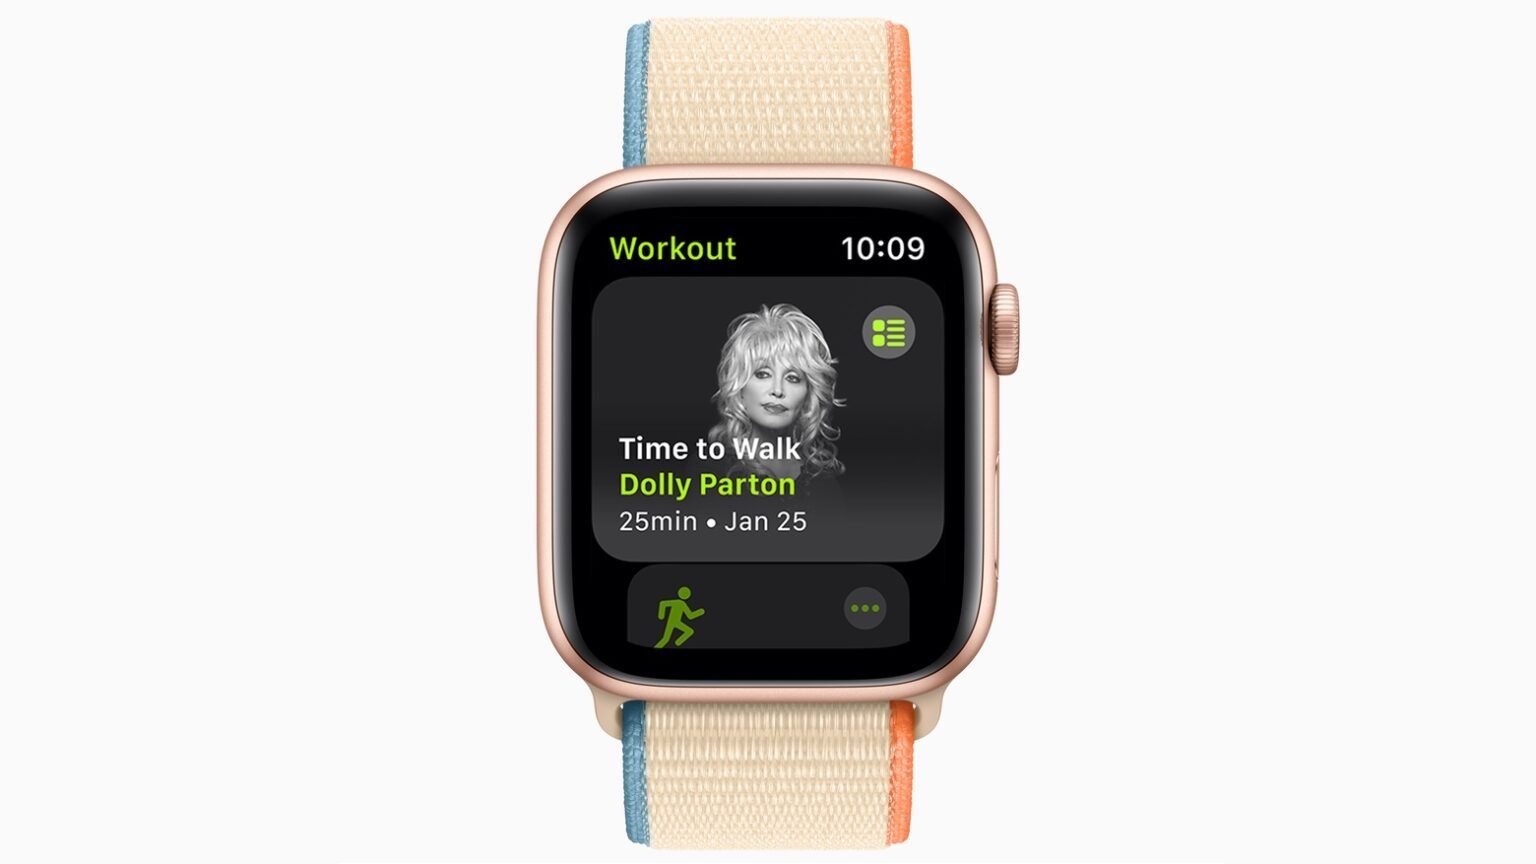 Time to Walk in Apple Fitness+ makes exercise